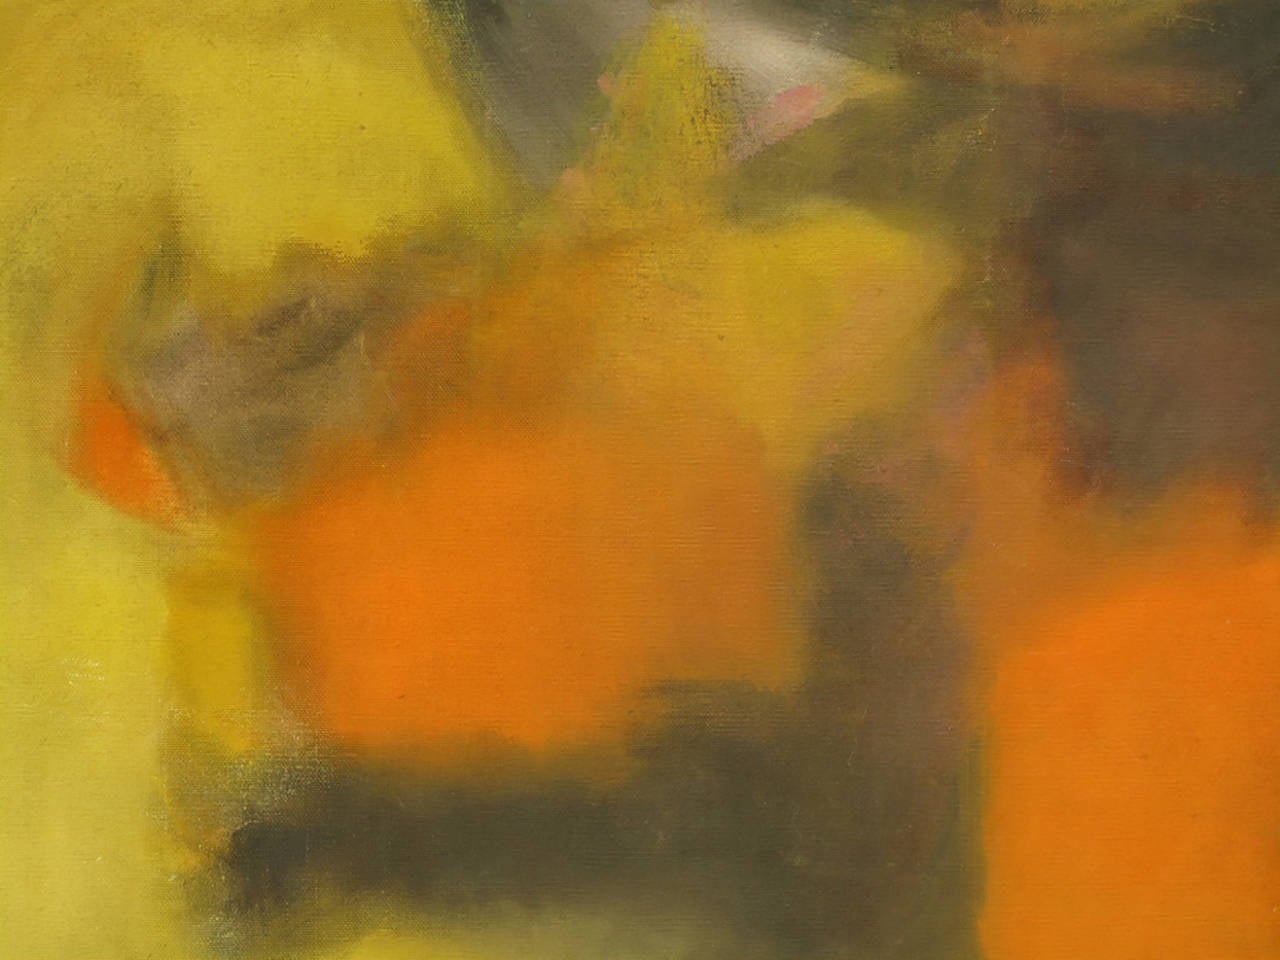 American Signed Abstract Oil Painting on Canvas in Ochre, Green and Orange For Sale